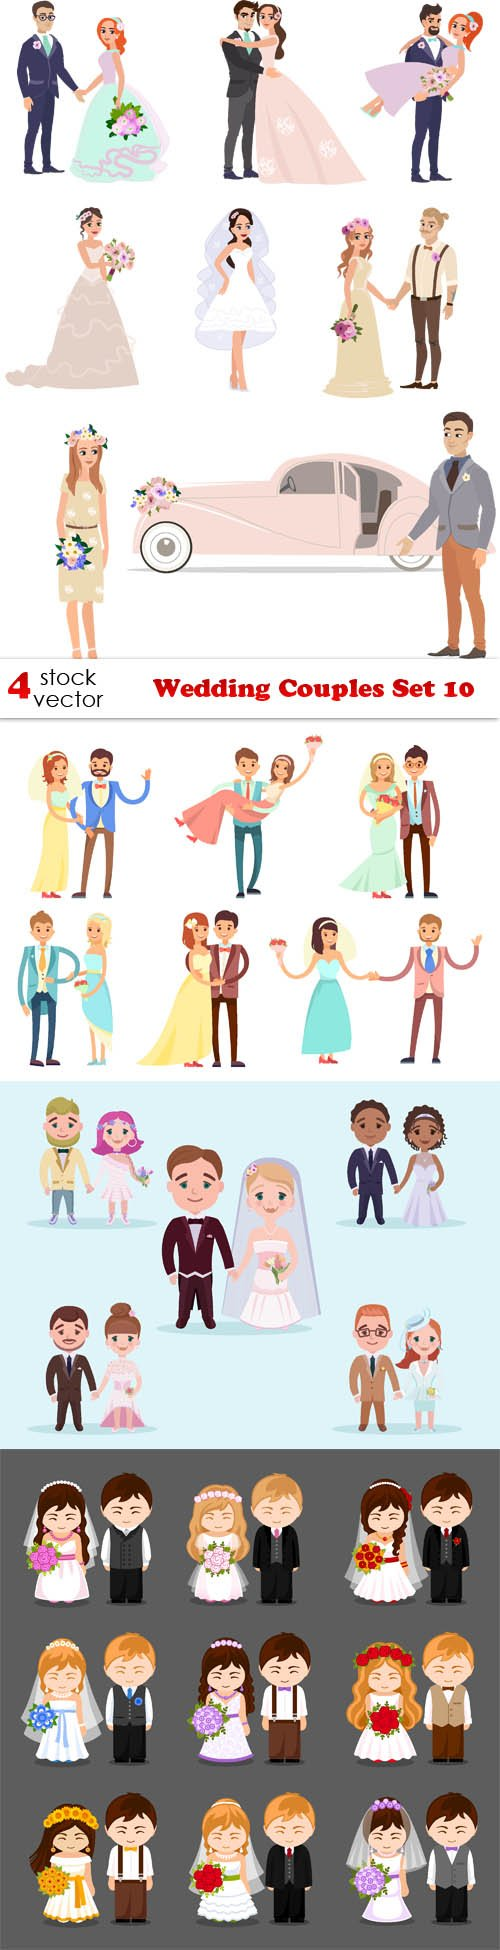 Vectors - Wedding Couples Set 10